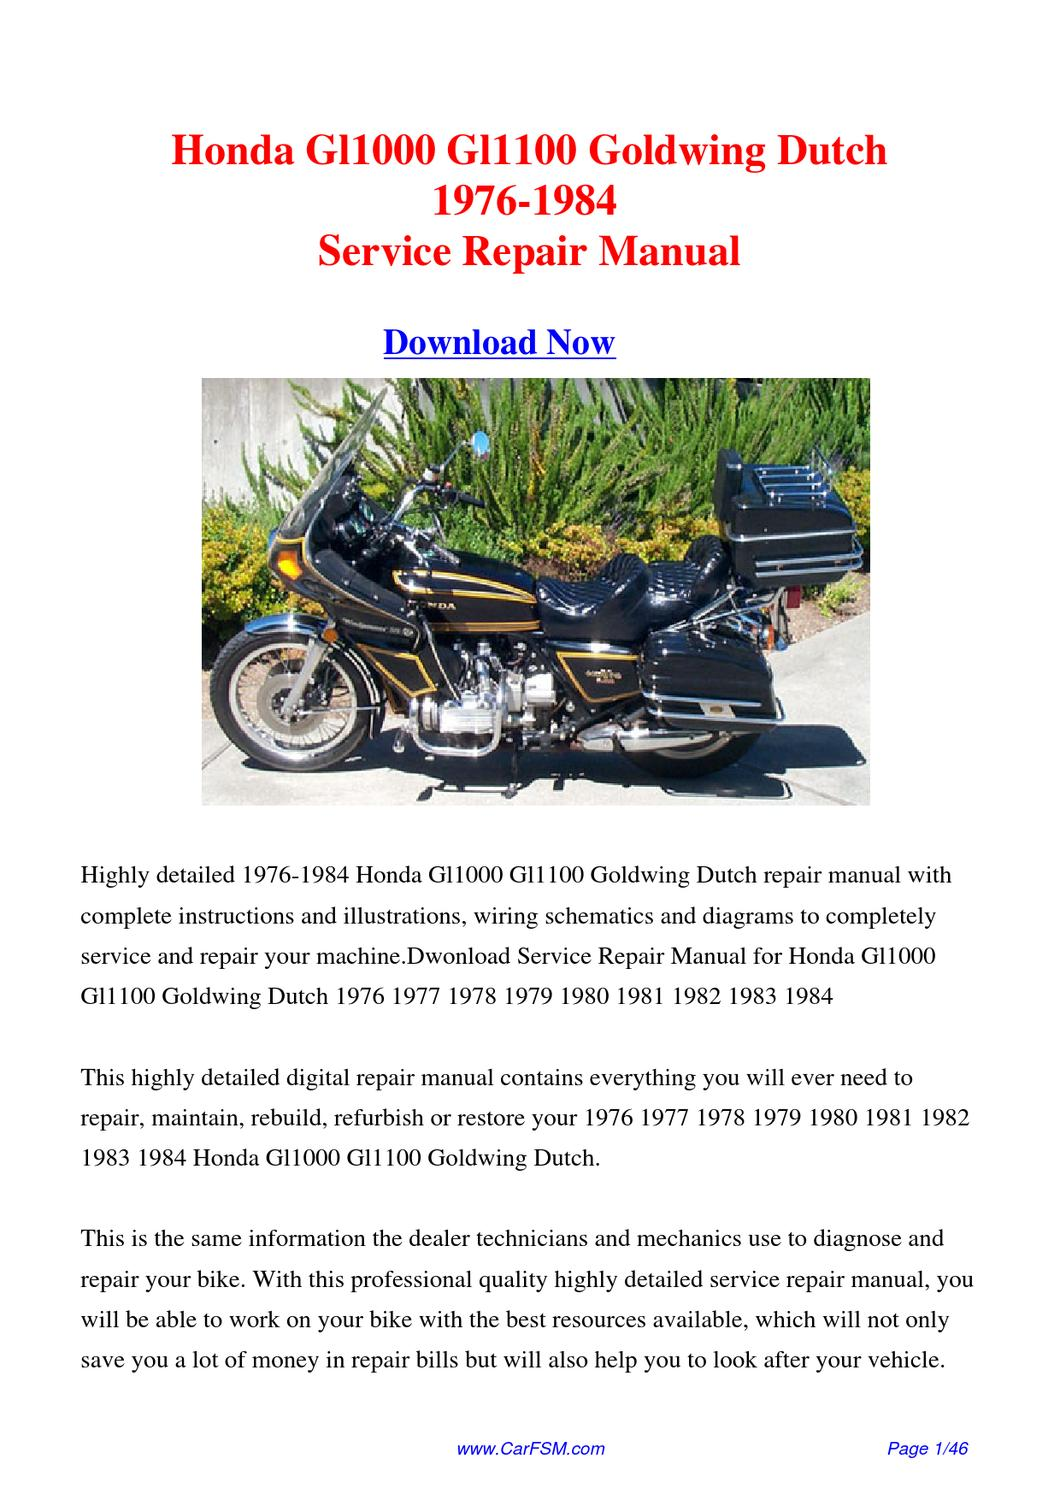 Addition Honda Goldwing Wiring Diagram As Well As 1978 Honda Goldwing